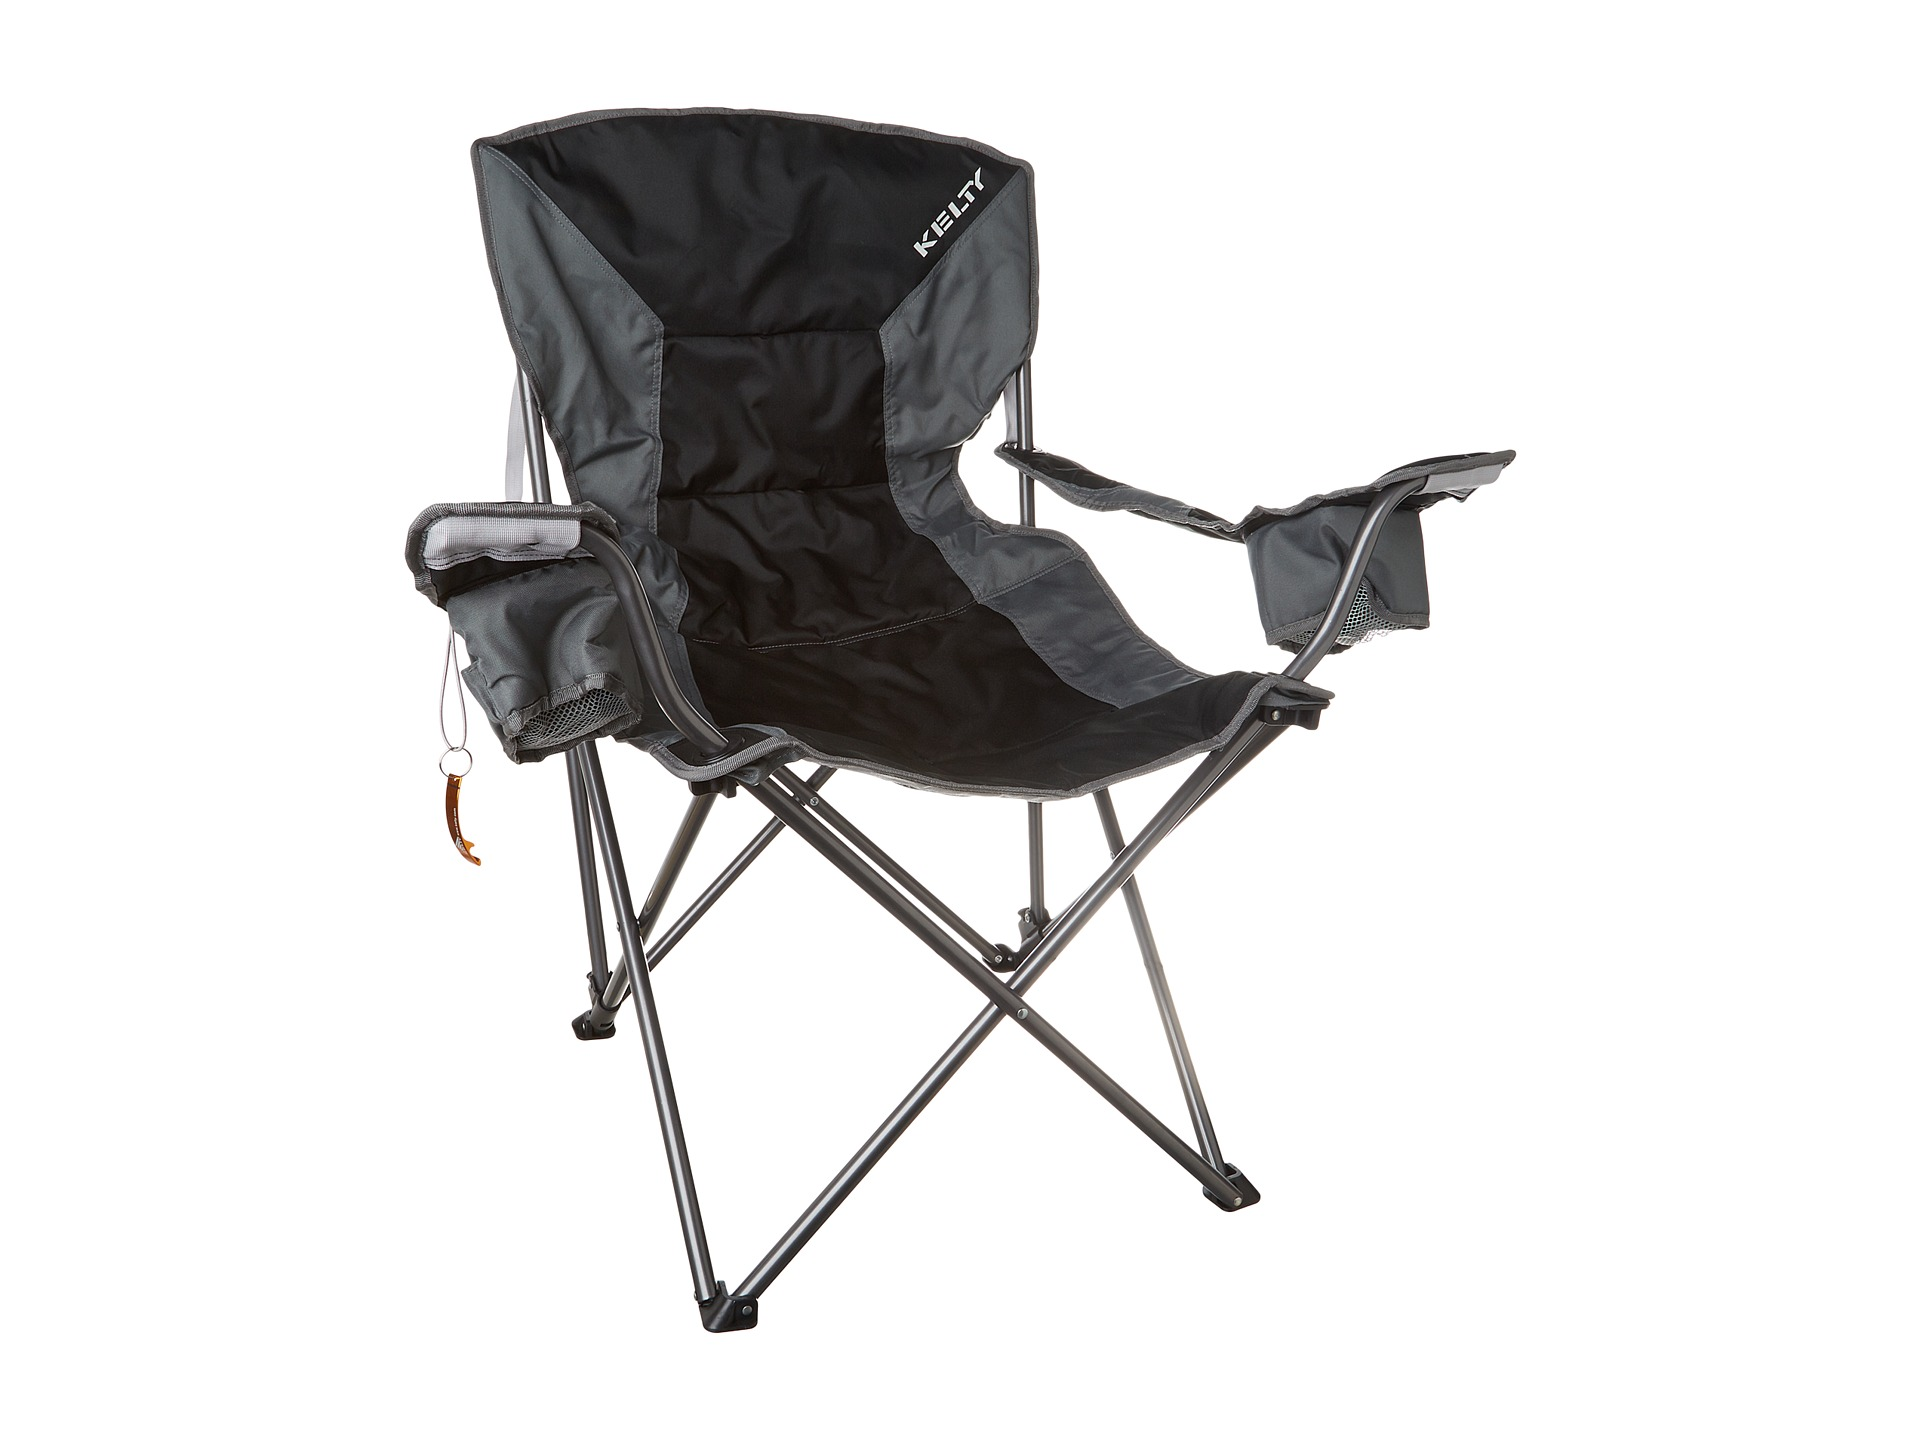 Kelty Deluxe Lounge Chair Black Zappos Free Shipping BOTH Ways